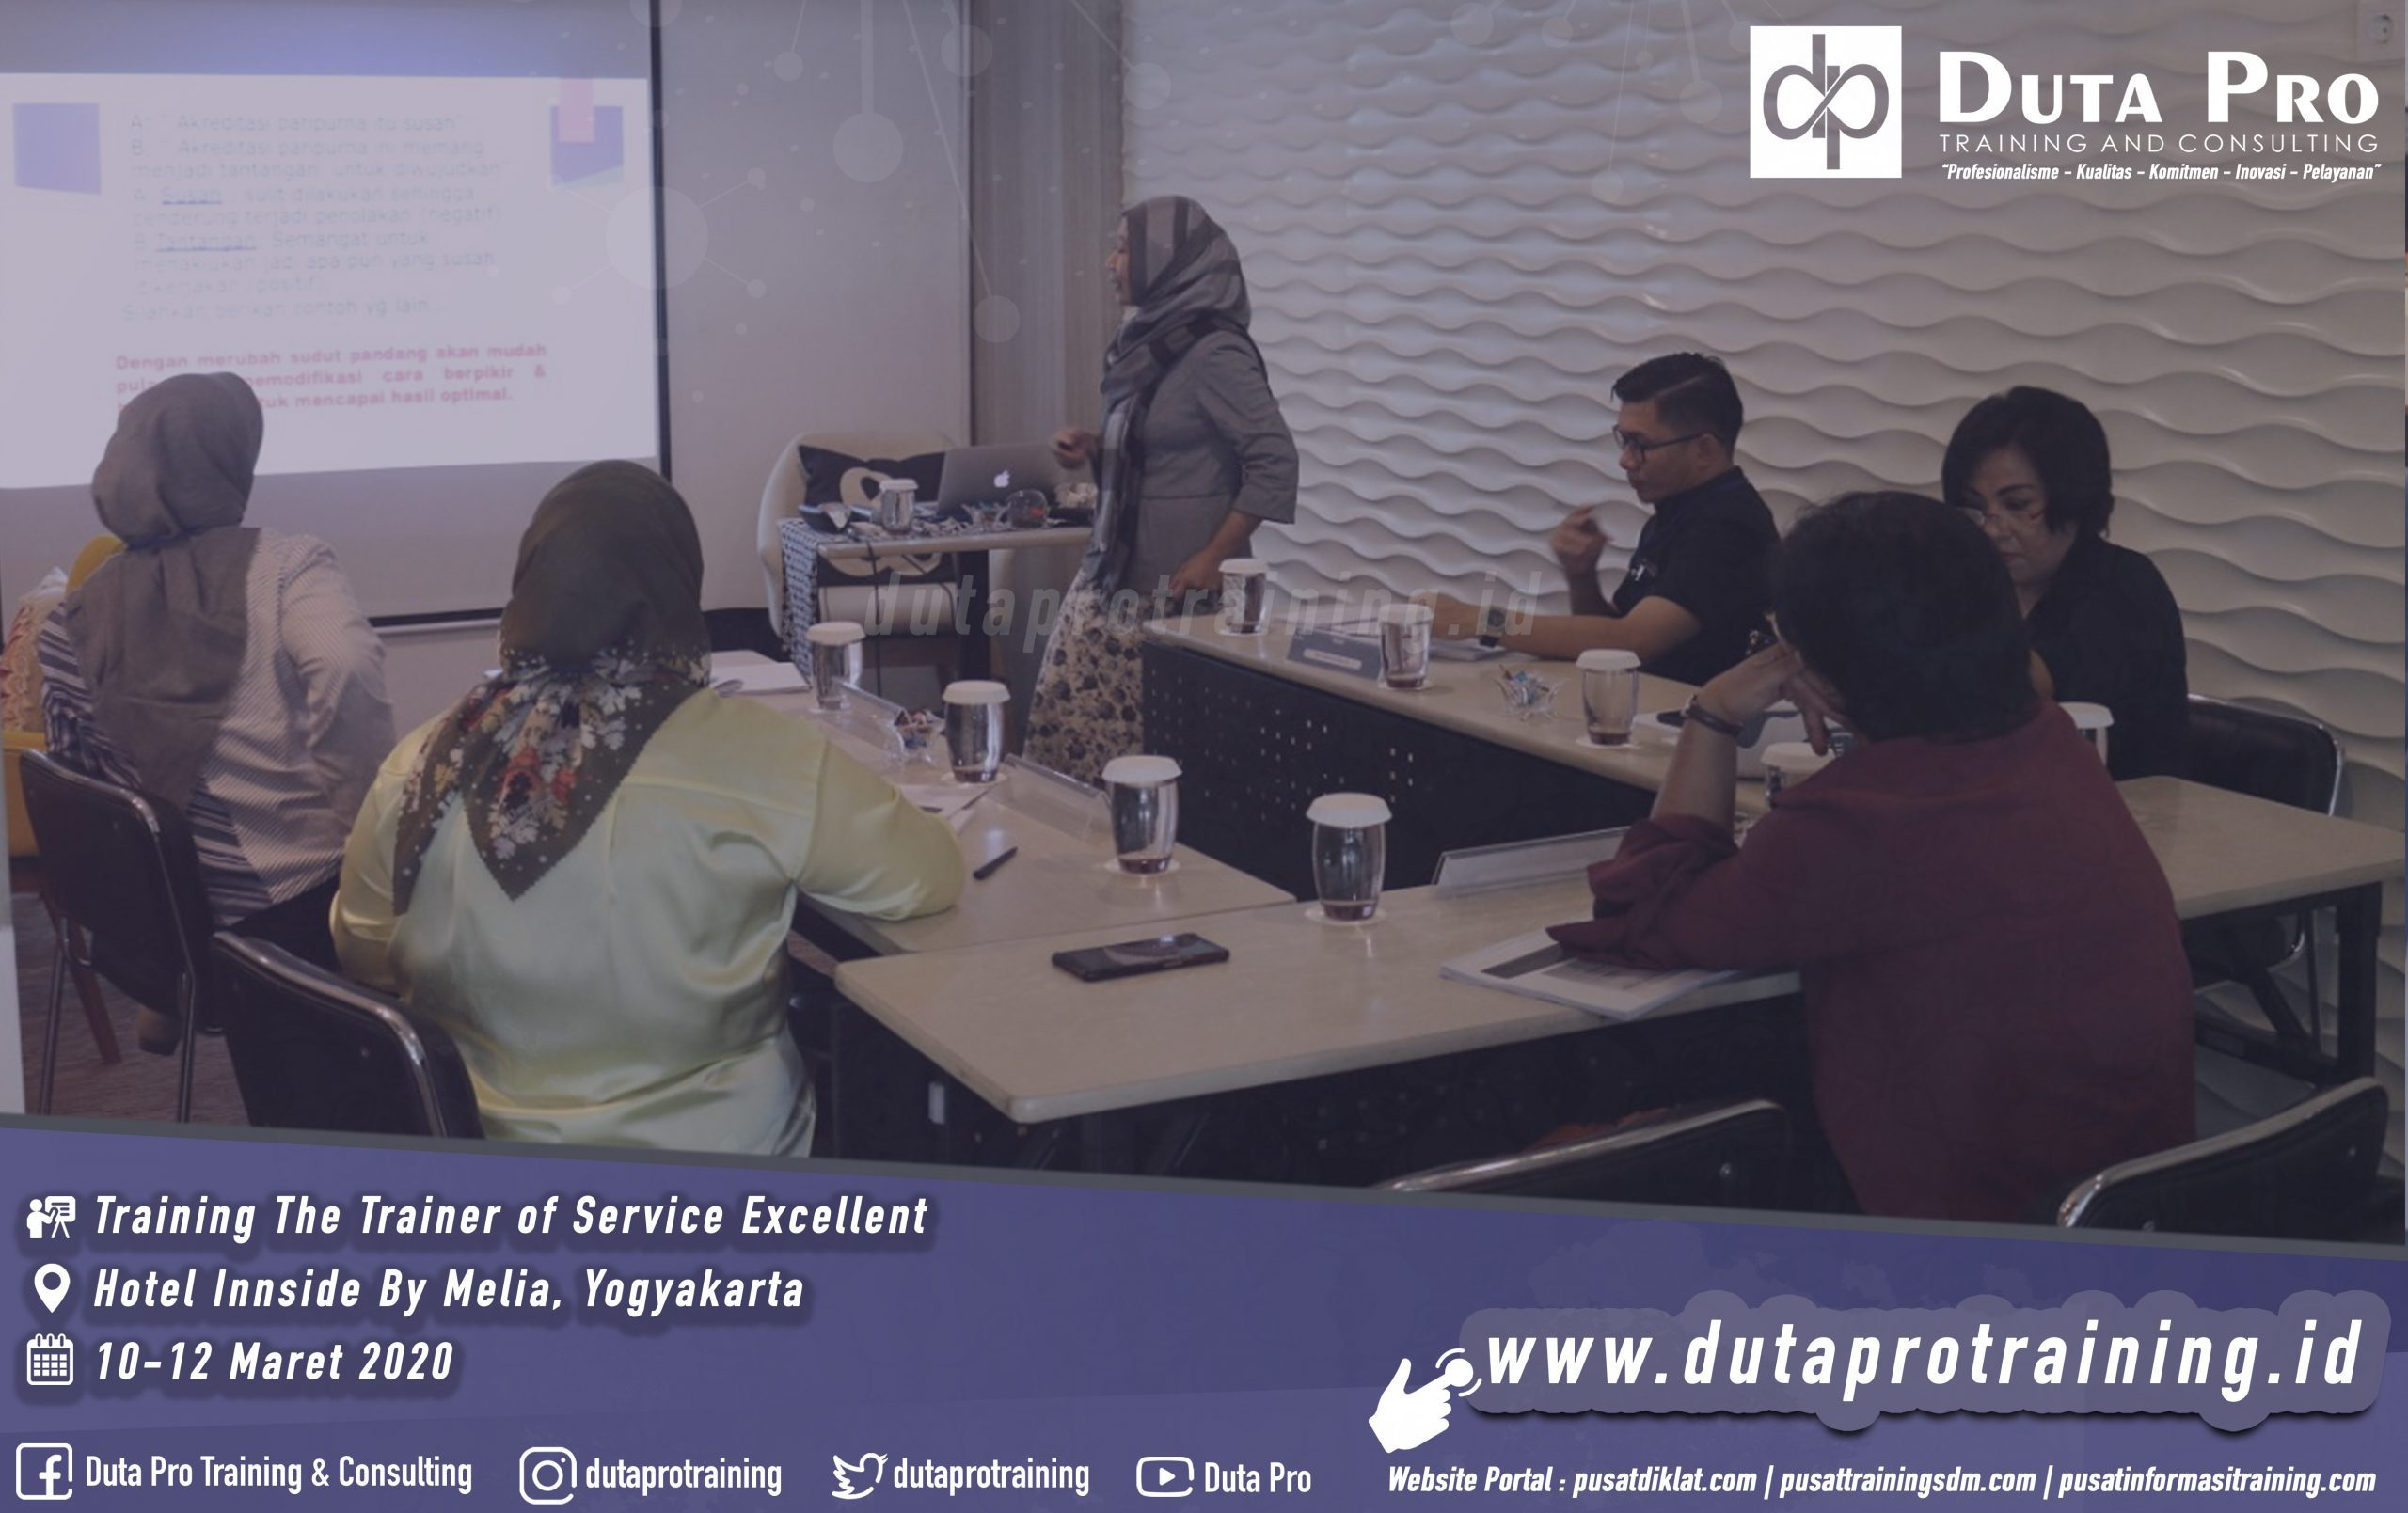 Galeri Website scaled 2559x1609 - Training Customer Service Skills for Online Service